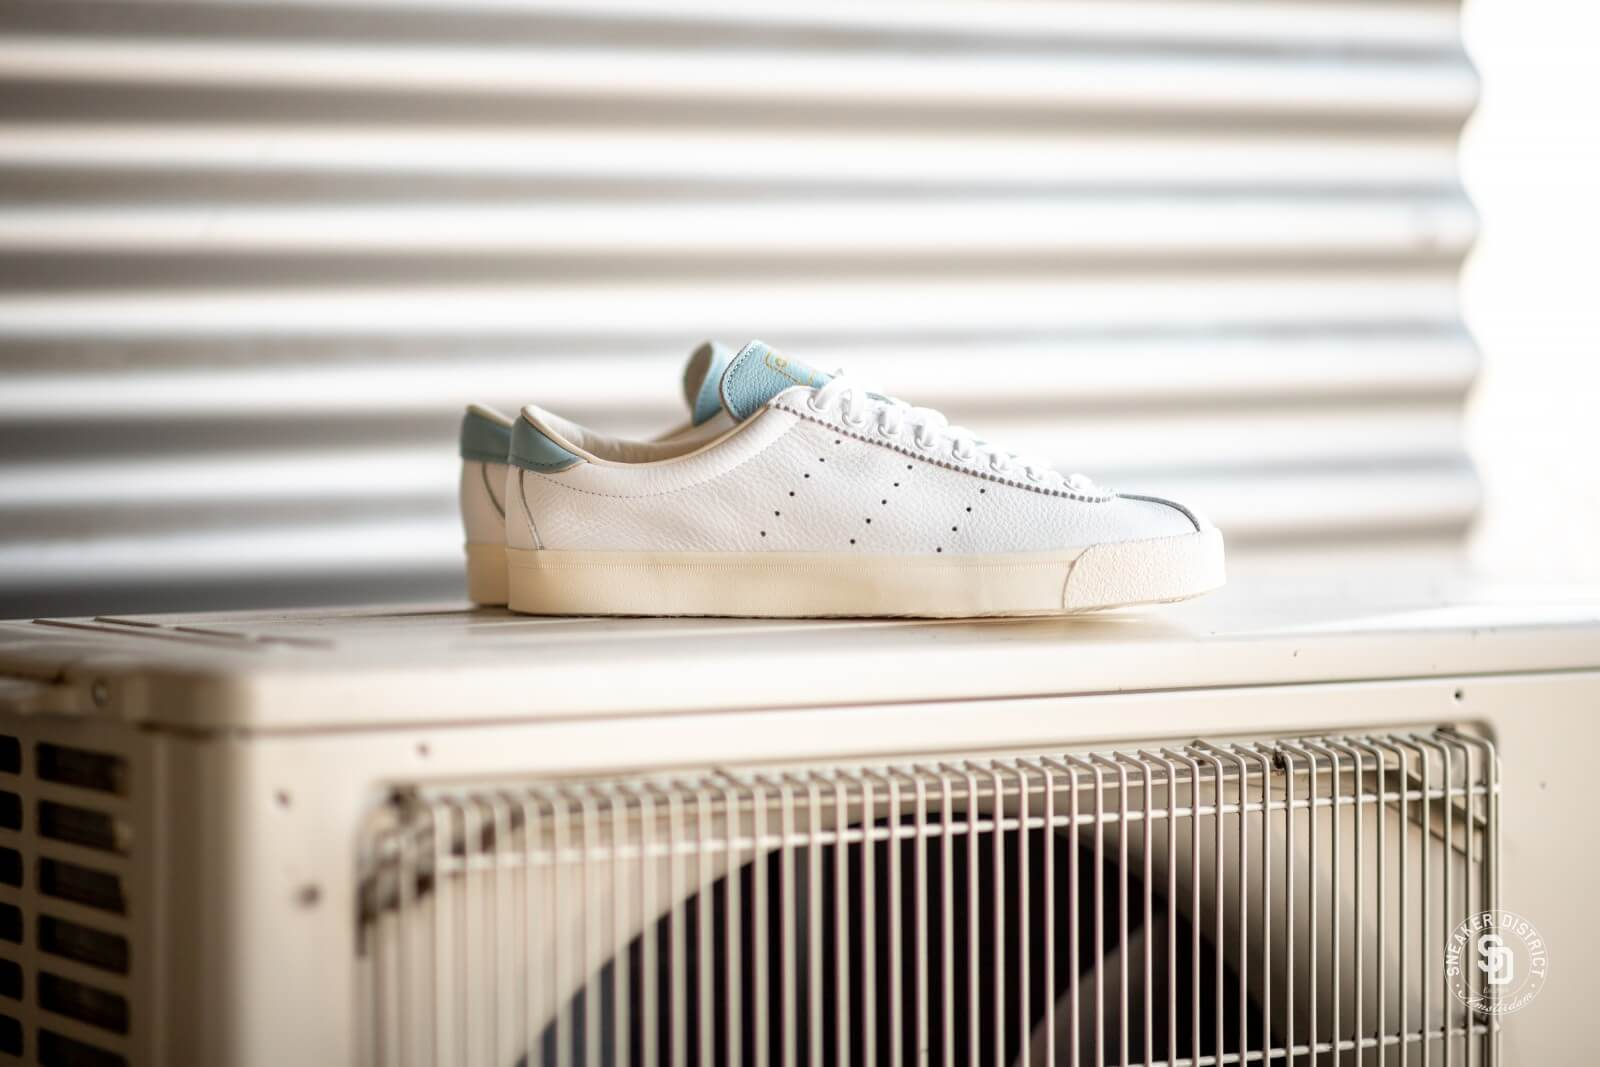 Adidas Lacombe Spezial | Adidas sneakers, Adidas shoes